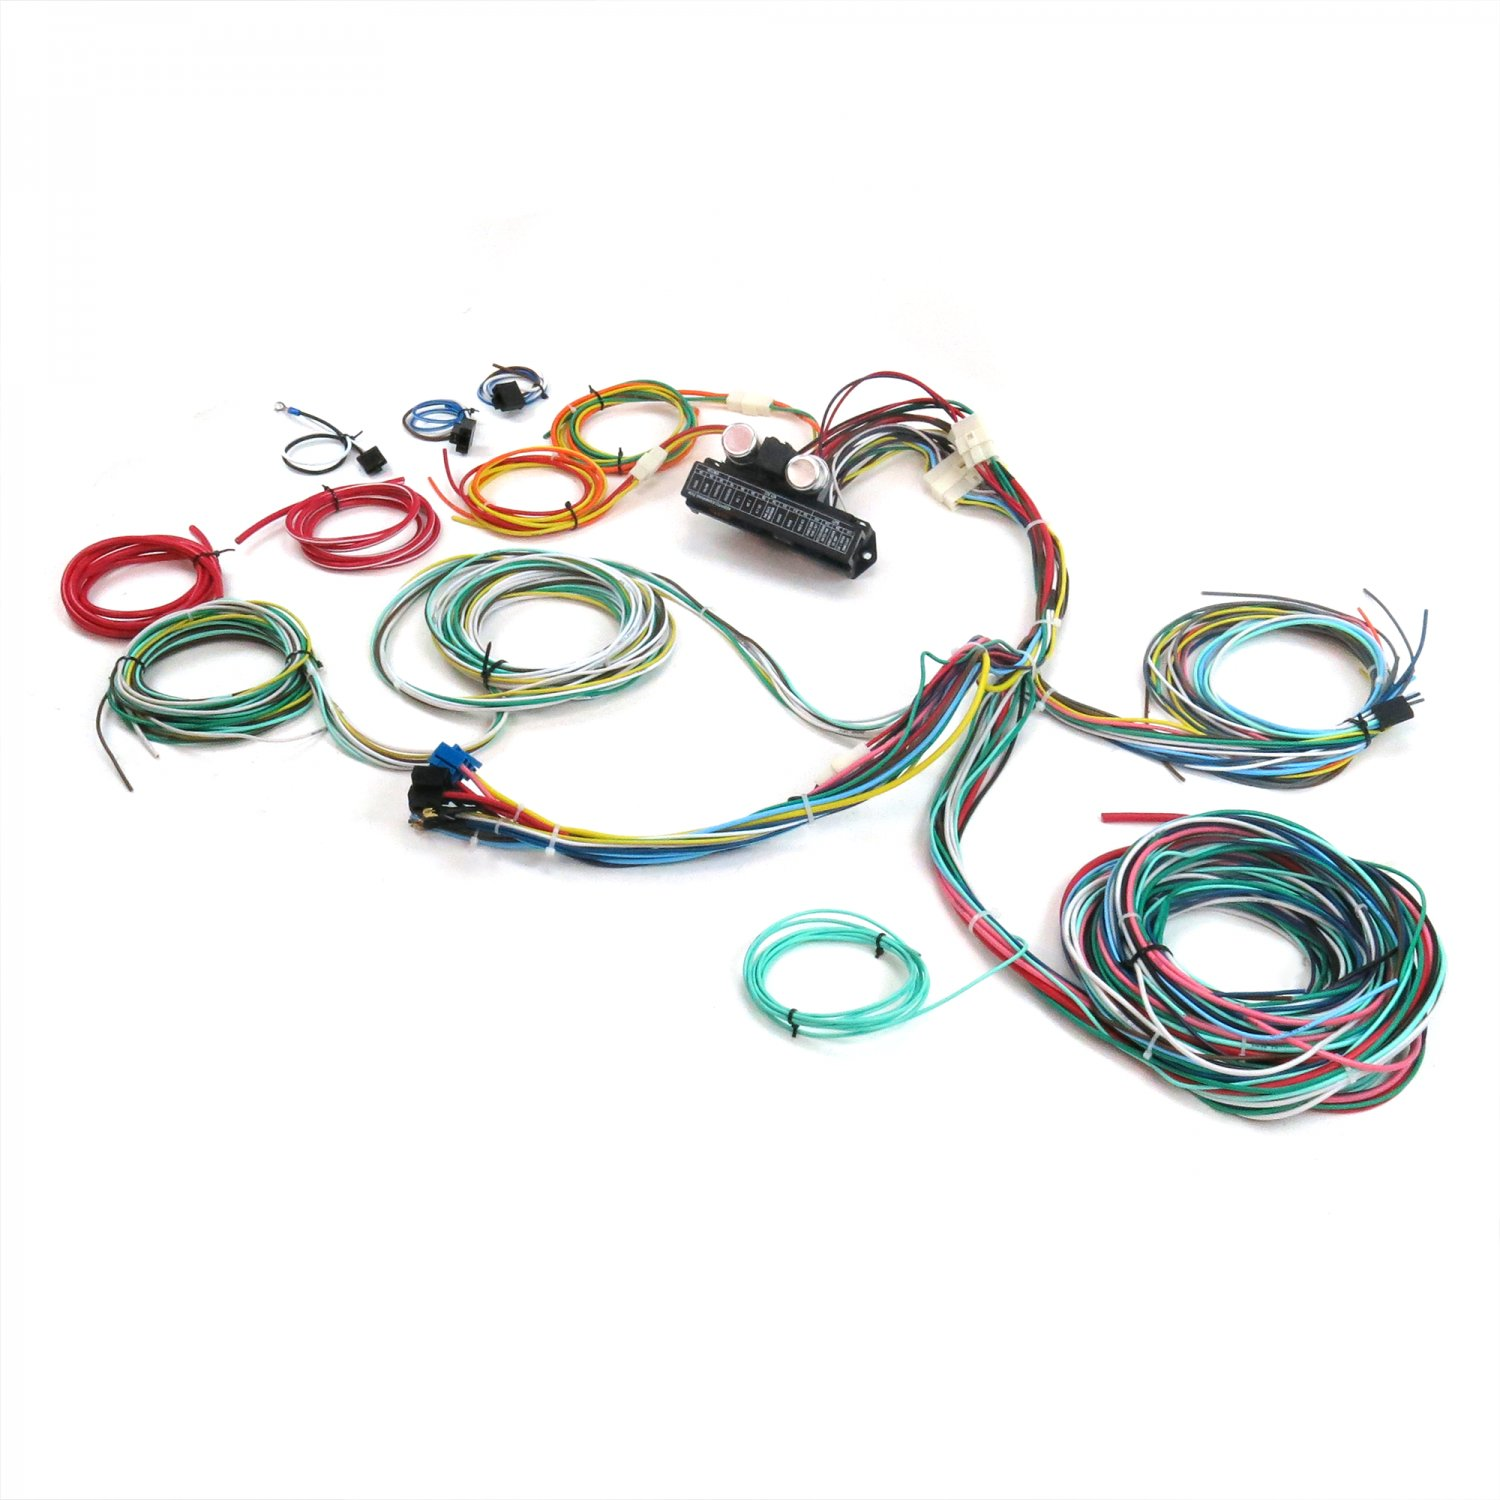 Auto Wire Harness Re Wiring Kit For Any 80 86 Ford Truck 12v Kits American Standard